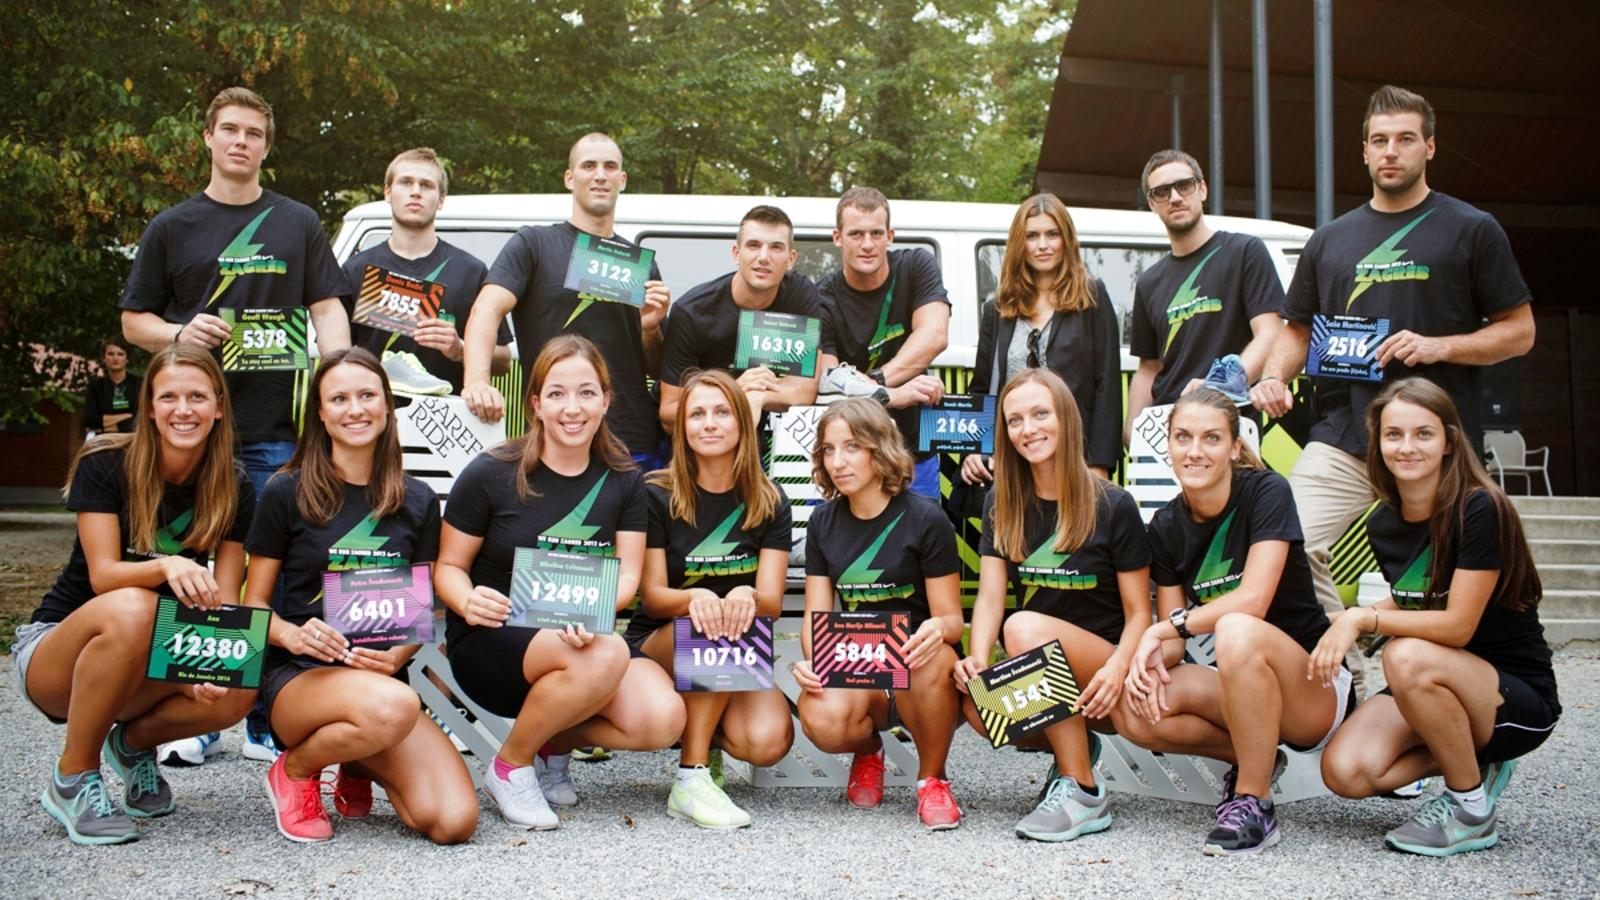 Zagreb runners to lace up and join the Nike We Run movement - Nike News 2a134922b